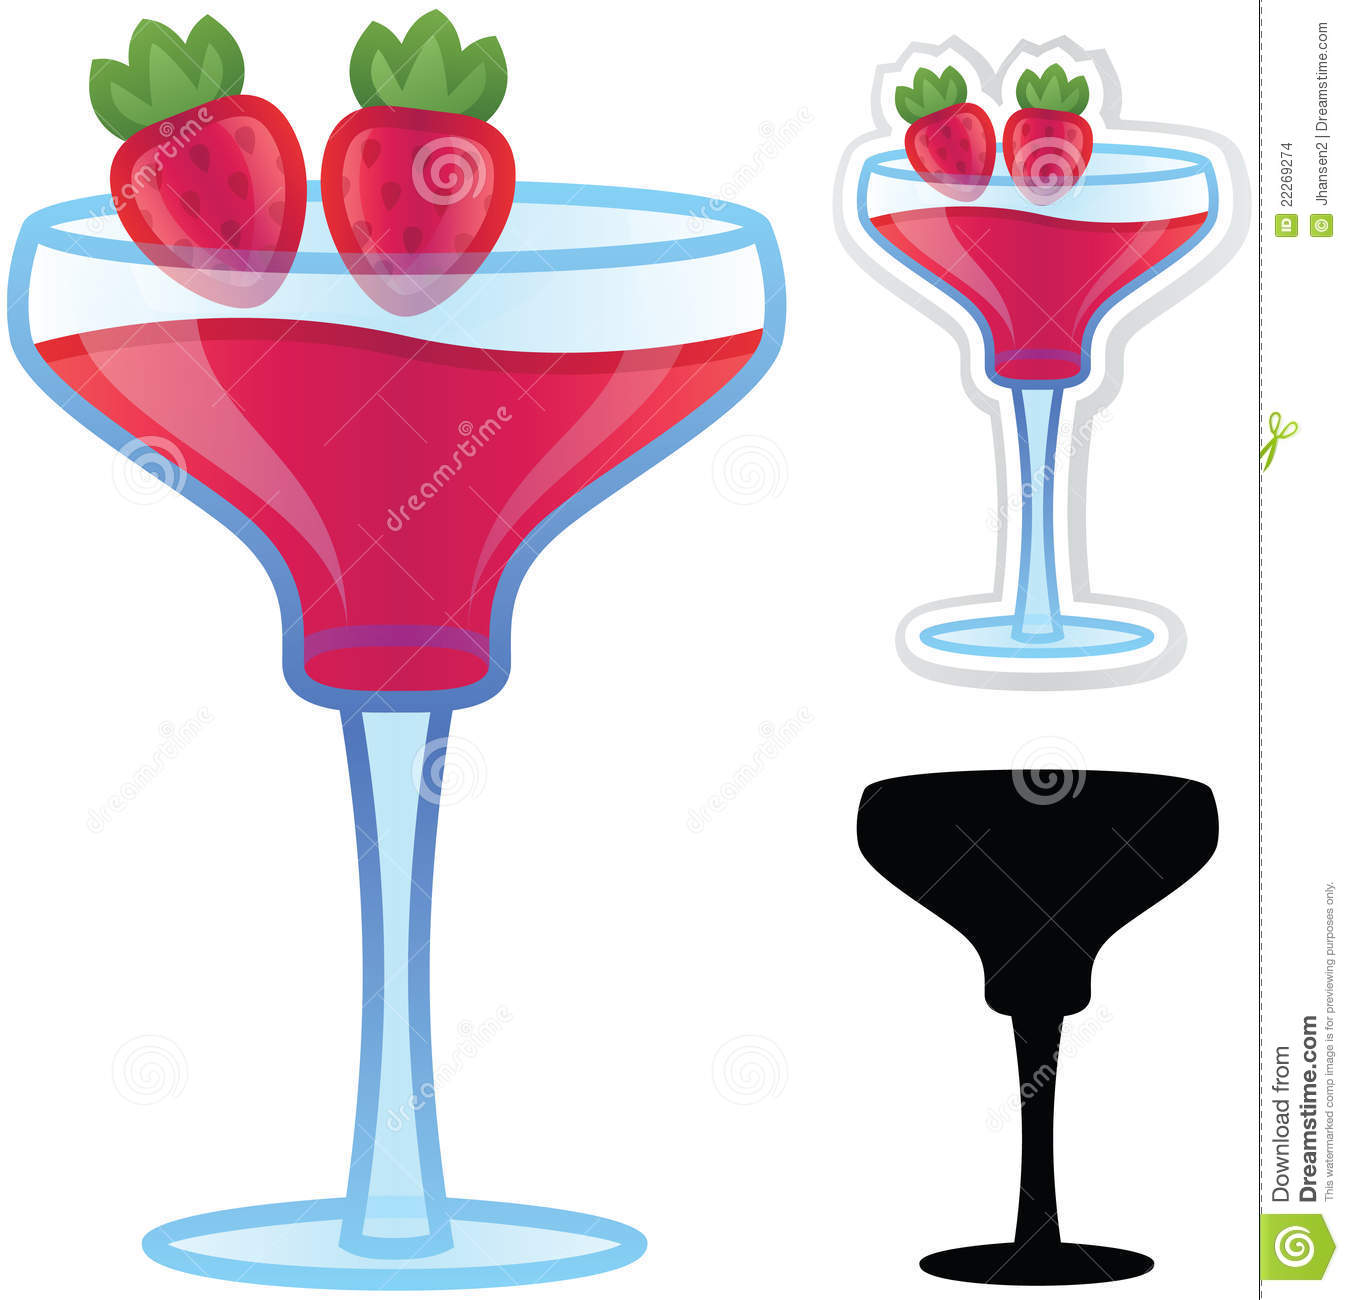 Strawbery Daiquiri Stock Images - Image: 22269274